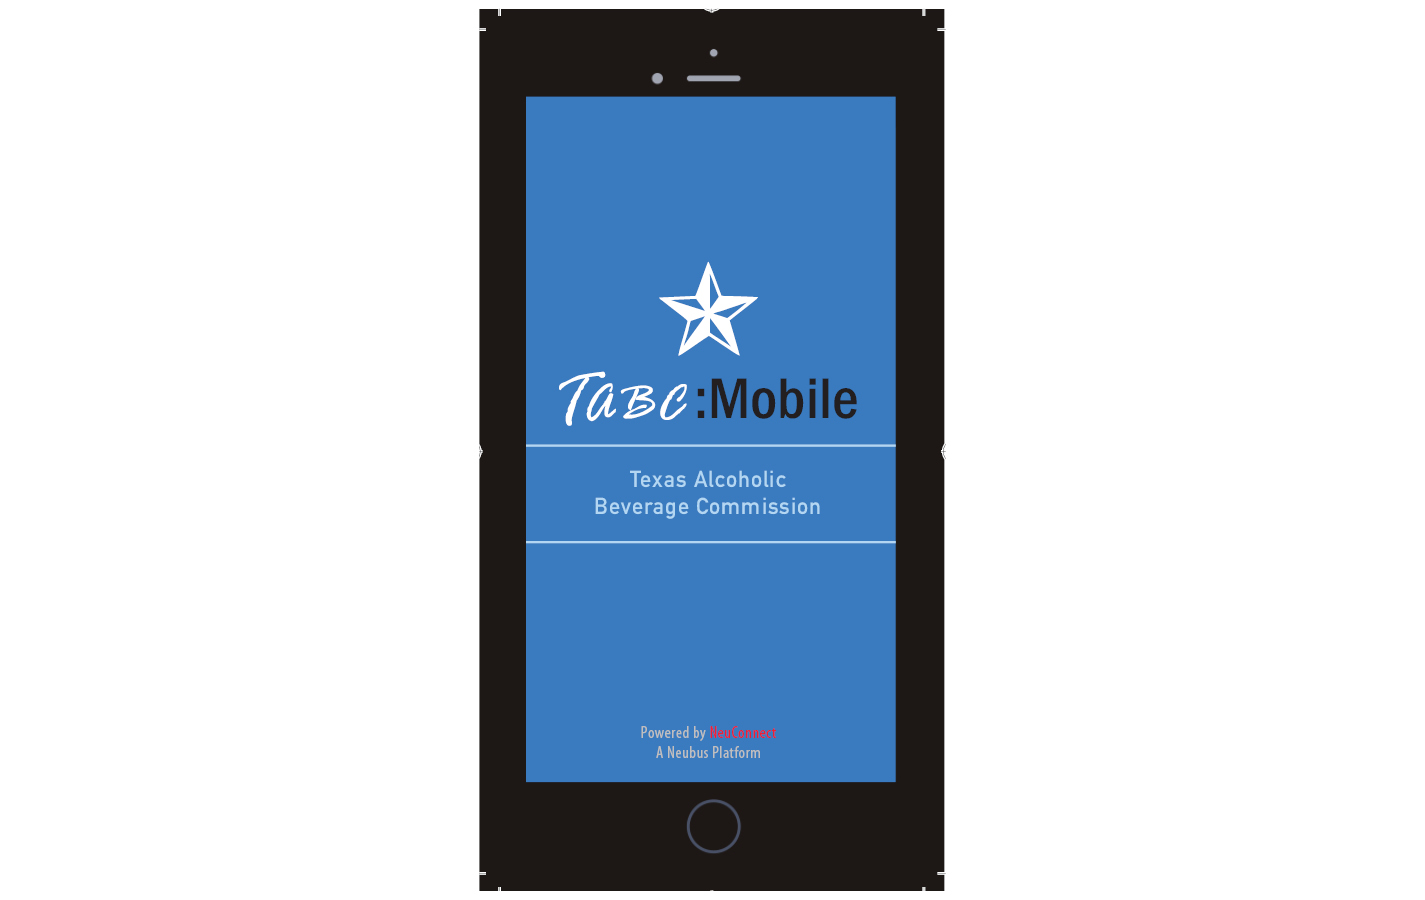 TABC:Mobile App Card